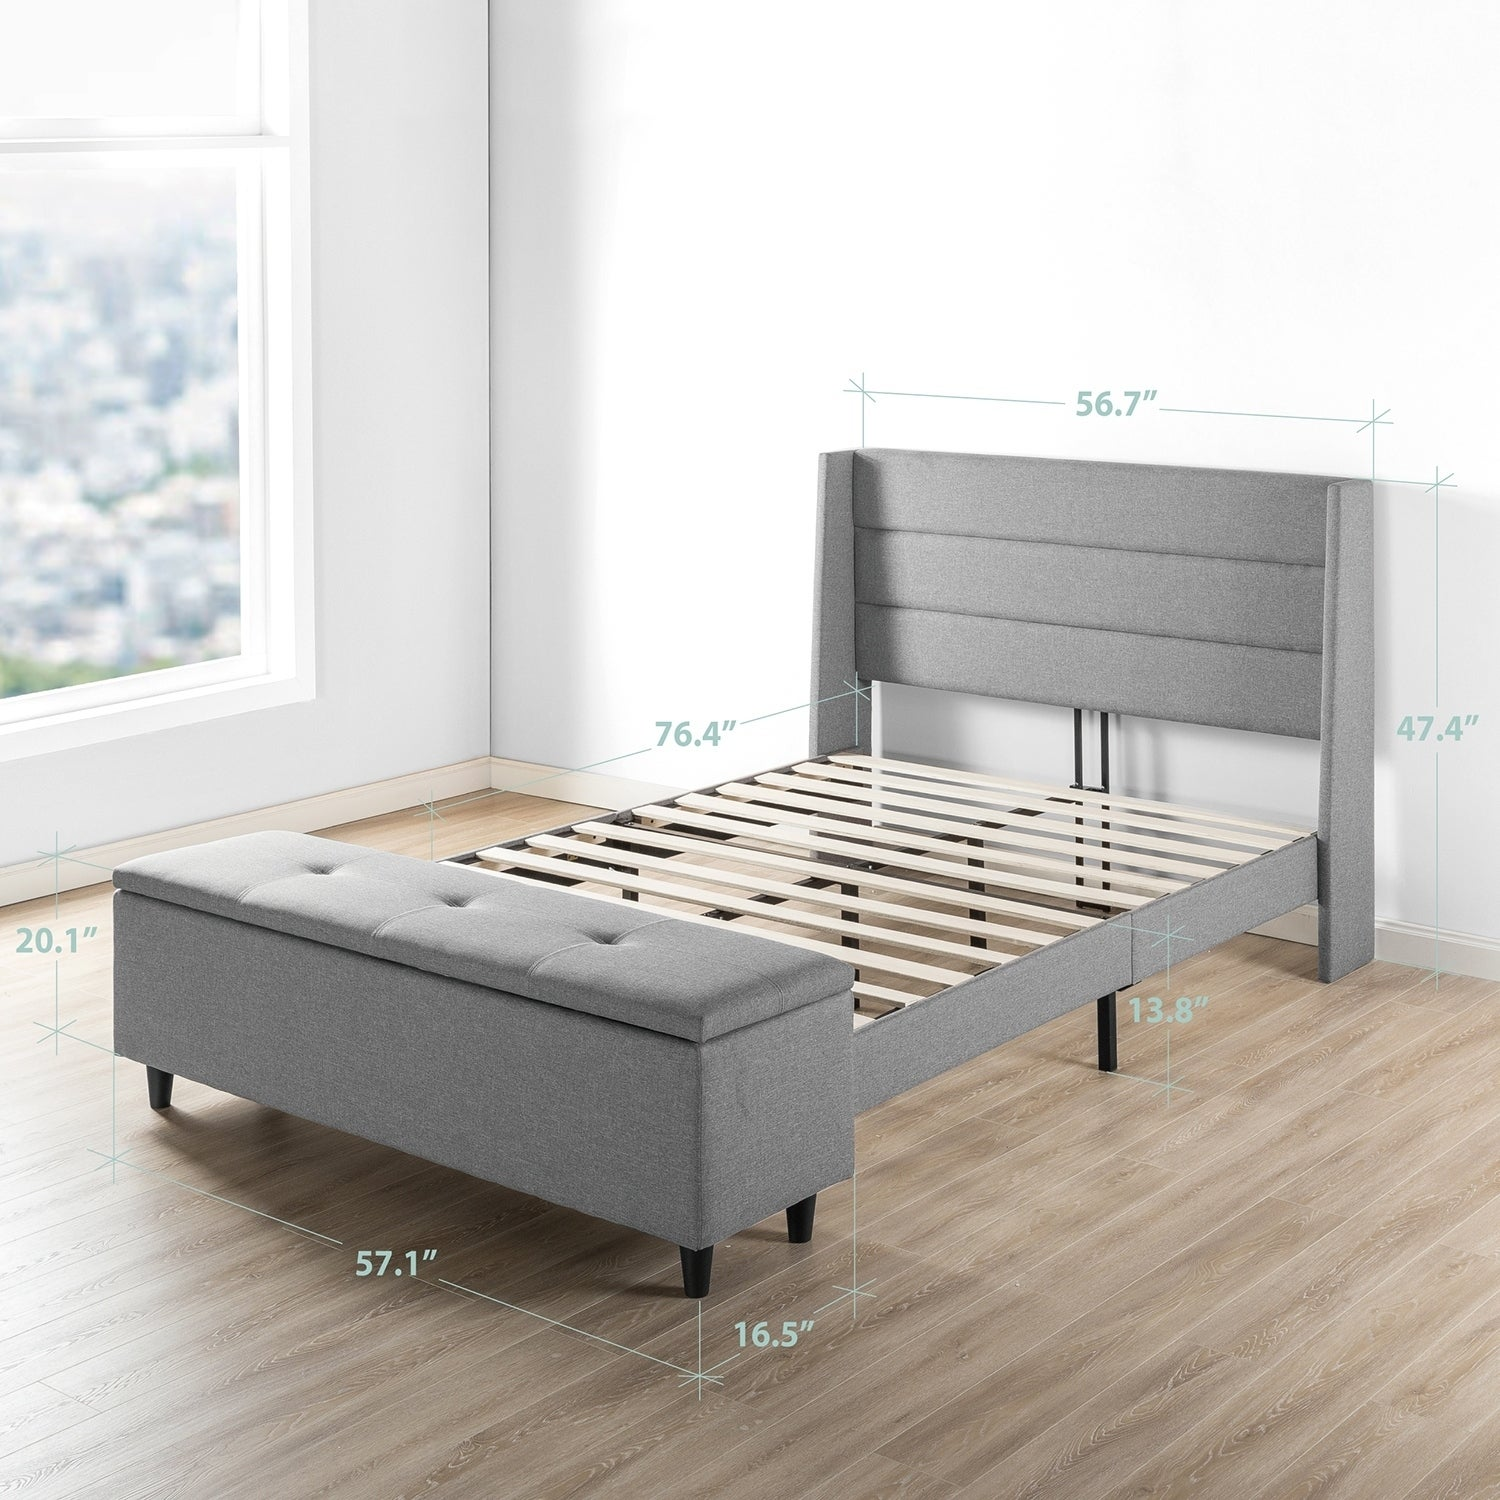 Shop Black Friday Deals On Full Size Modern Upholstered Platform Bed With Headboard And Storage Ottoman Crown Comfort On Sale Overstock 25859039